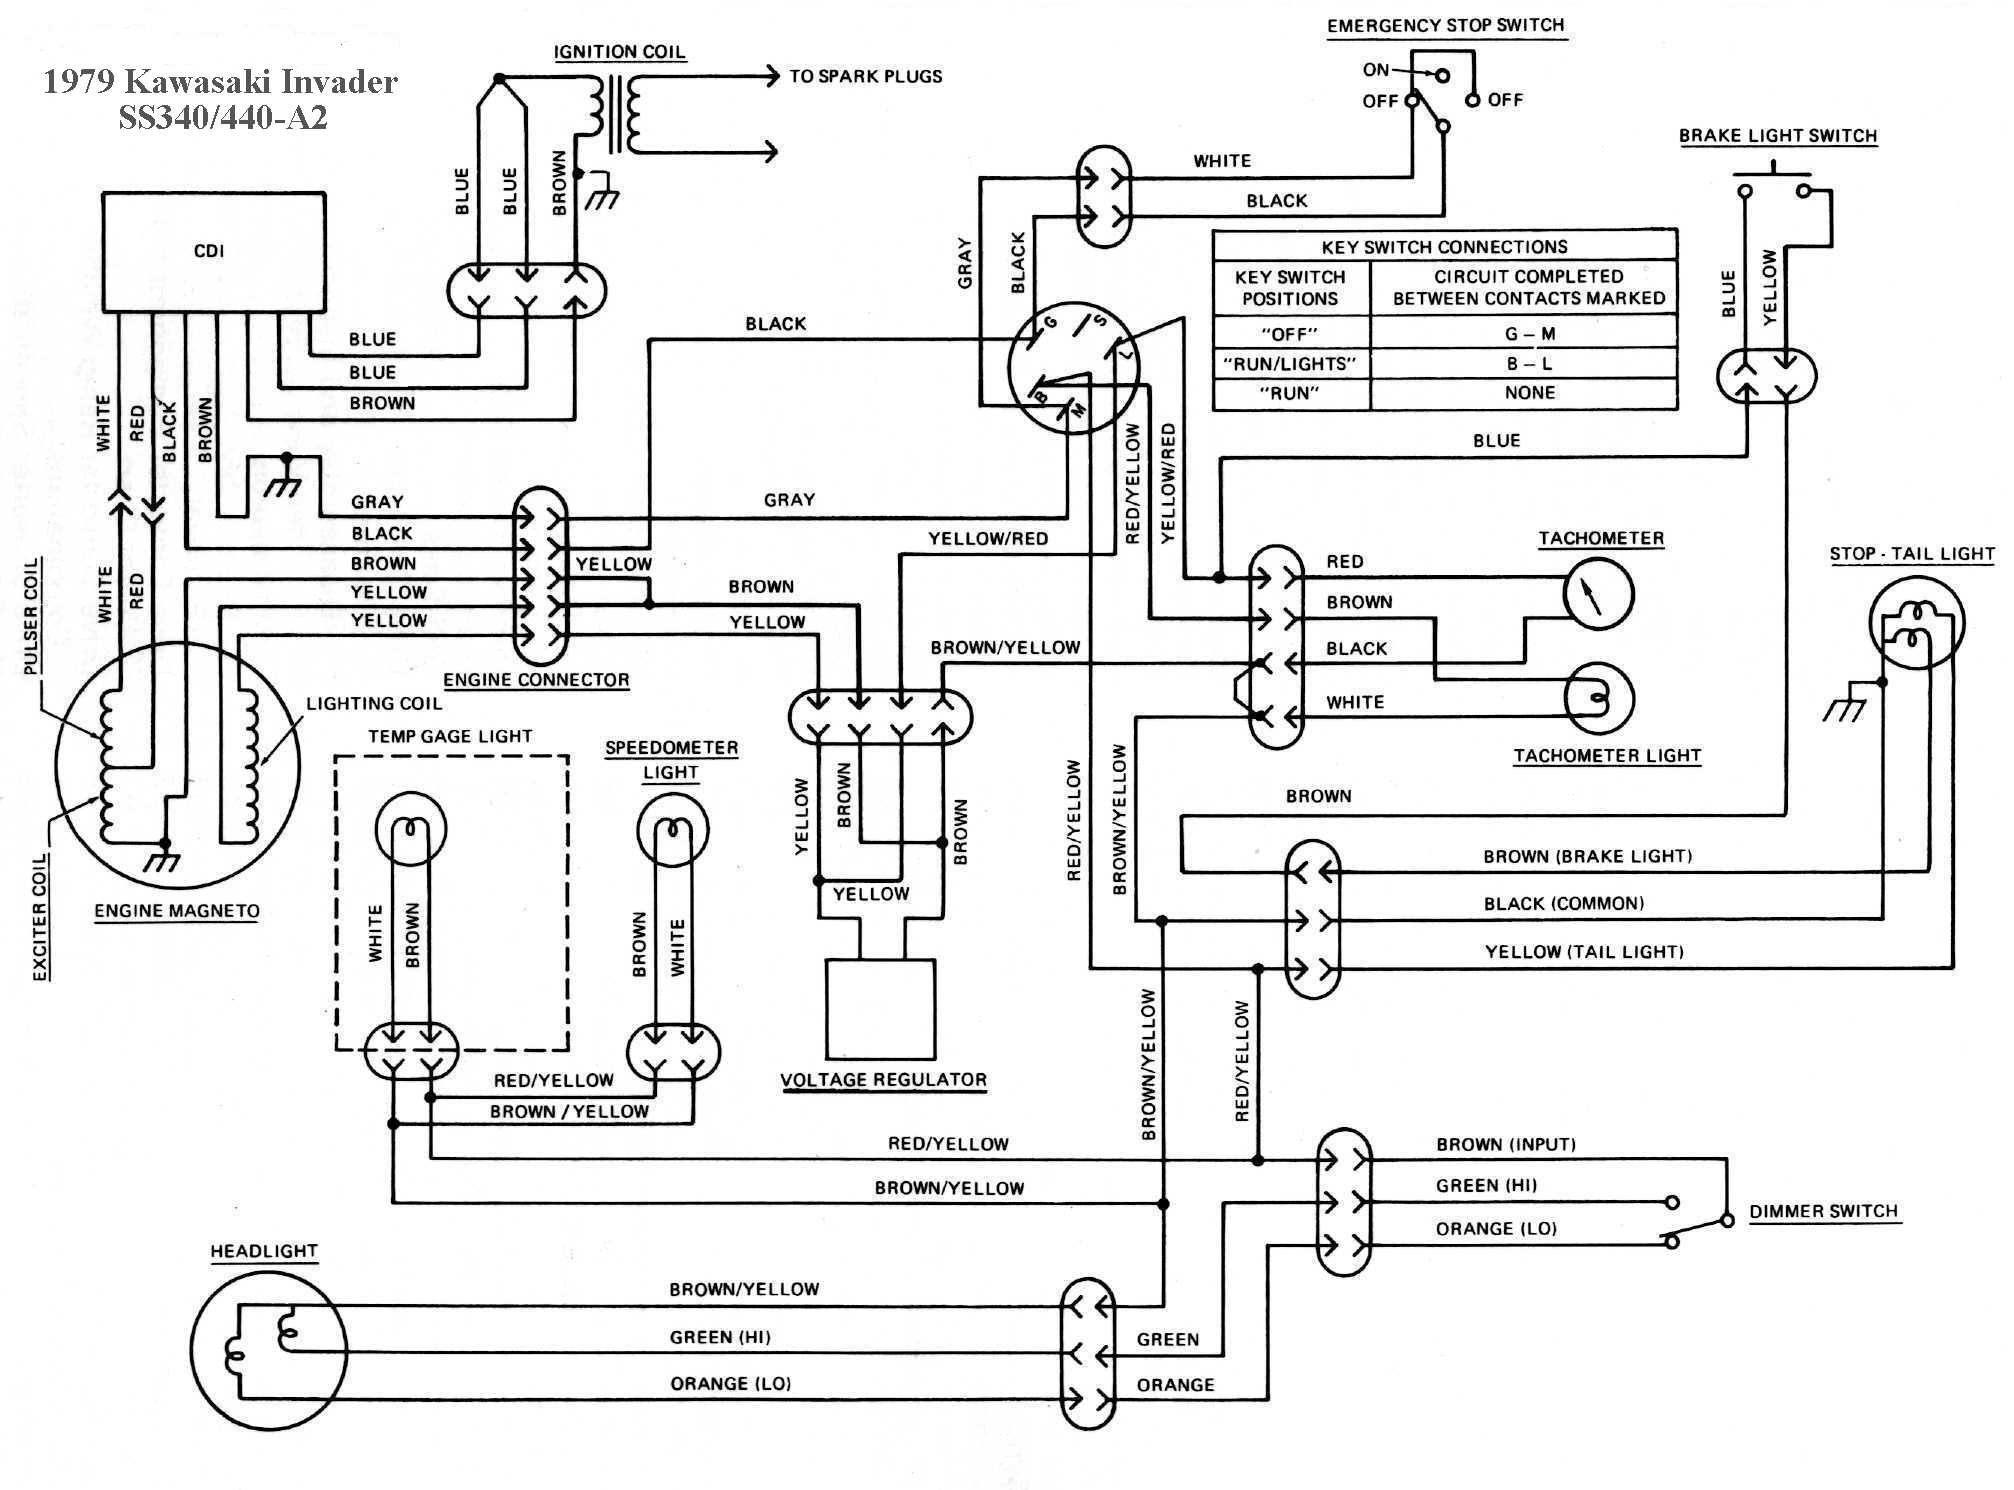 1996 wiring diagram for kawasaki 1100 zxi